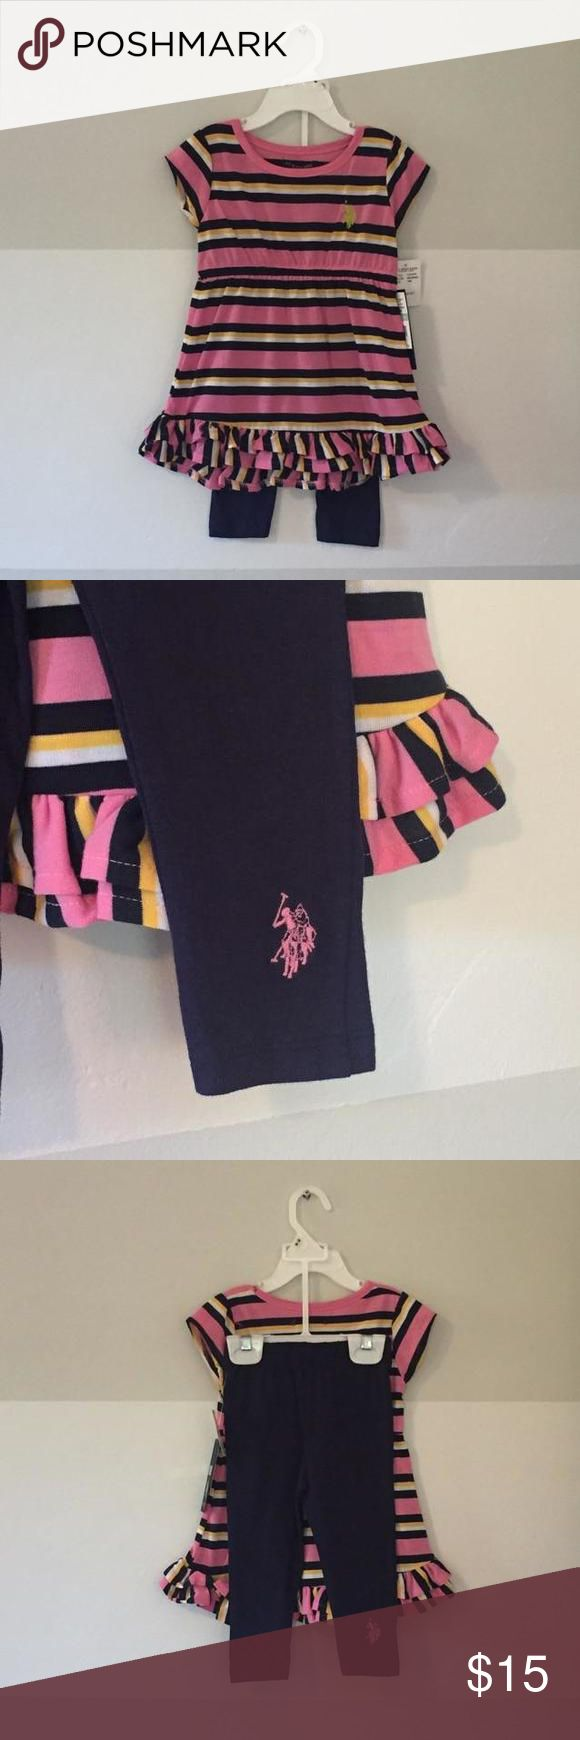 NWT U.S. Polo Association Set Pink, blue, yellow, and white striped tunic top with ruffle accents. Matching navy blue leggings. Both pieces have polo emblem. New with tags. U.S. Polo Assn. Matching Sets